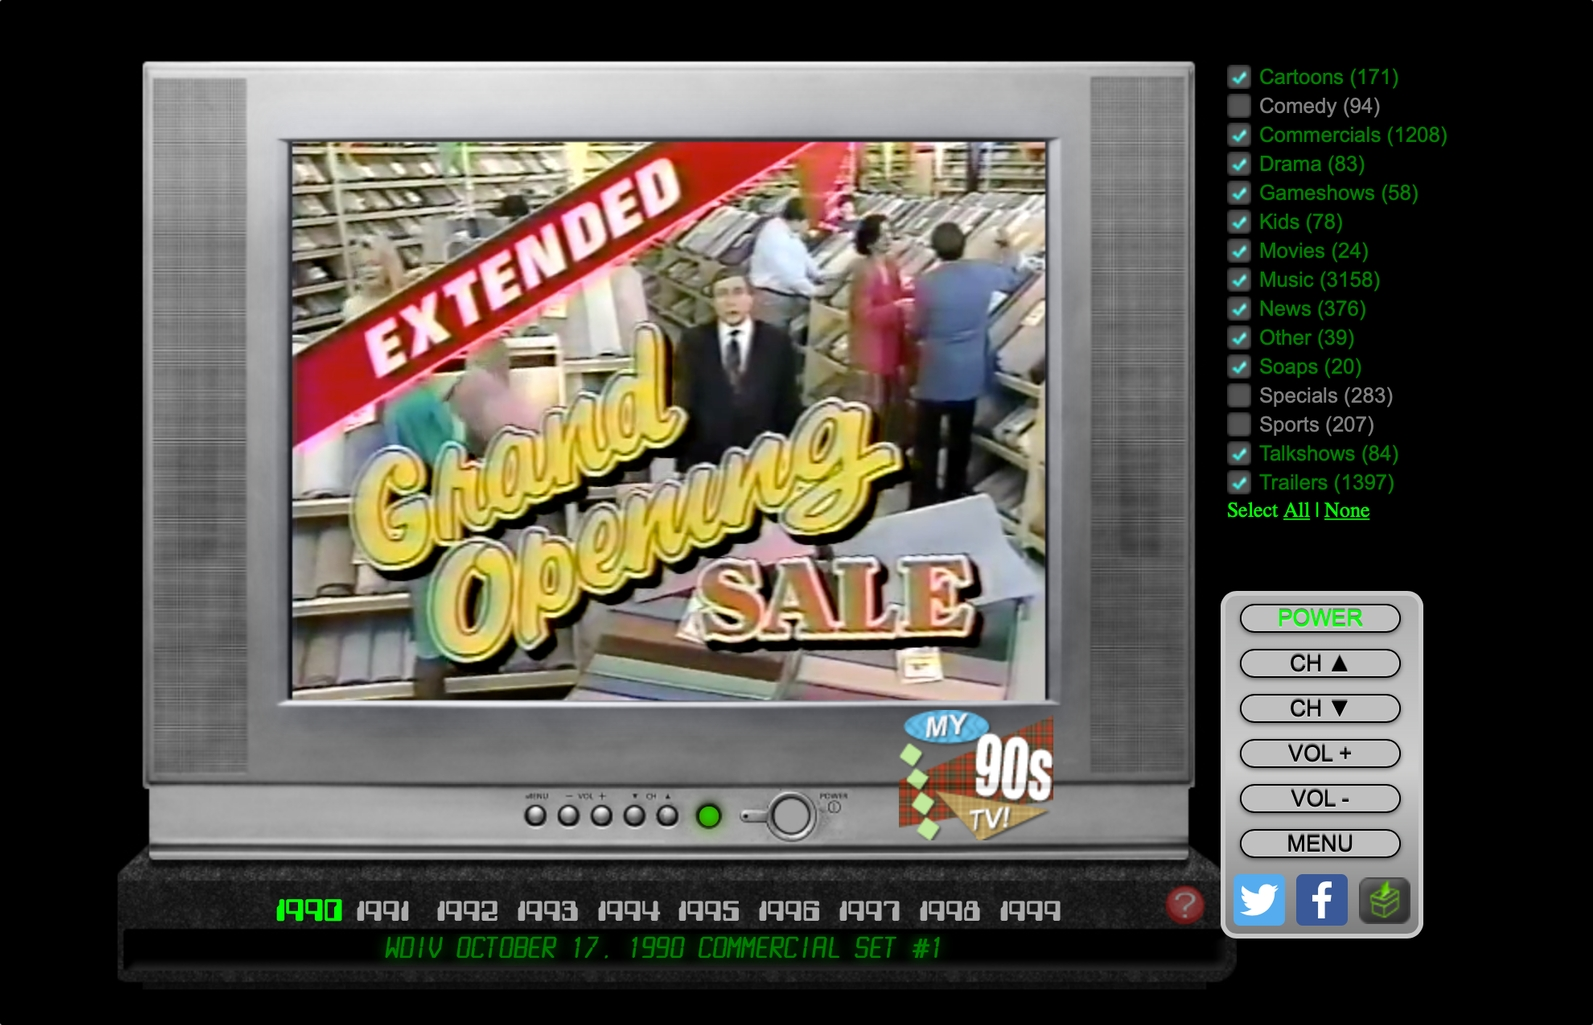 Internets greatest Place for Nostalgia TV